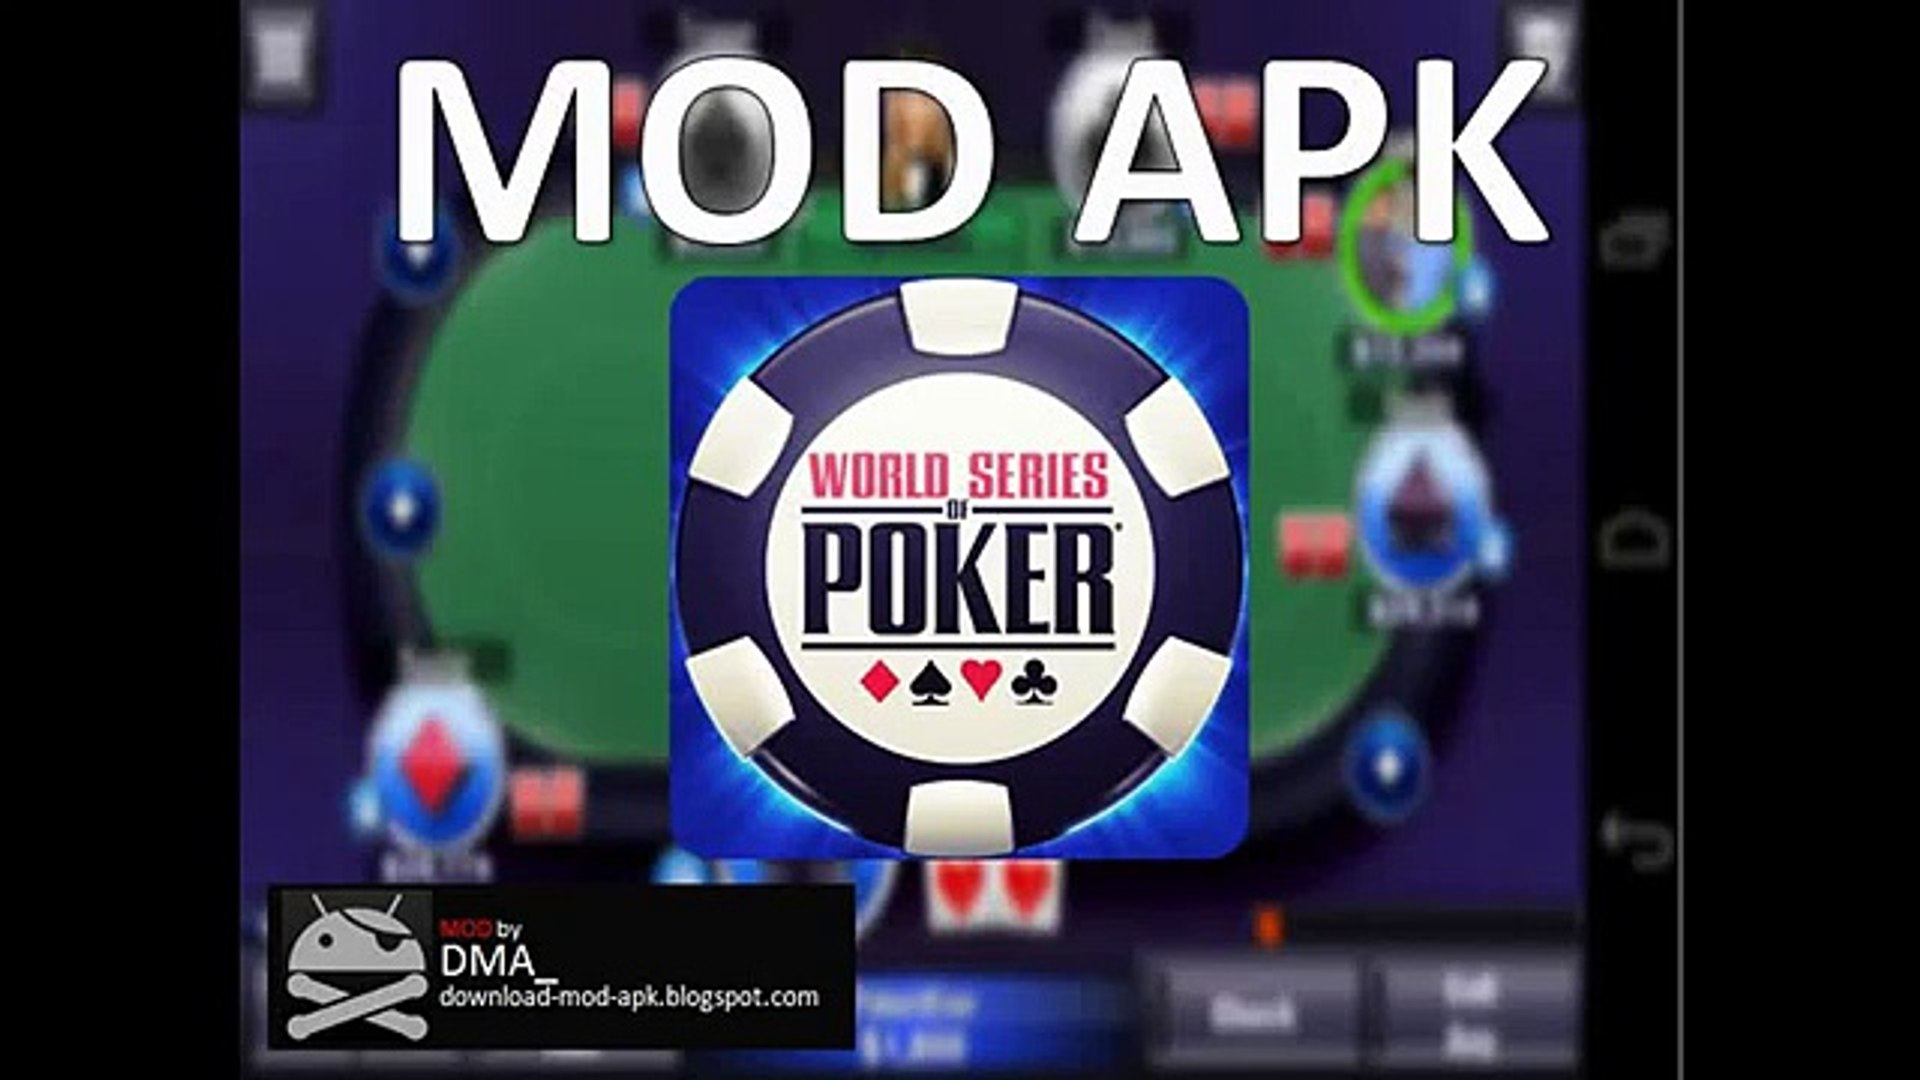 World Series Of Poker Mod Apk No Root Unlimited Chips Golds Video Dailymotion